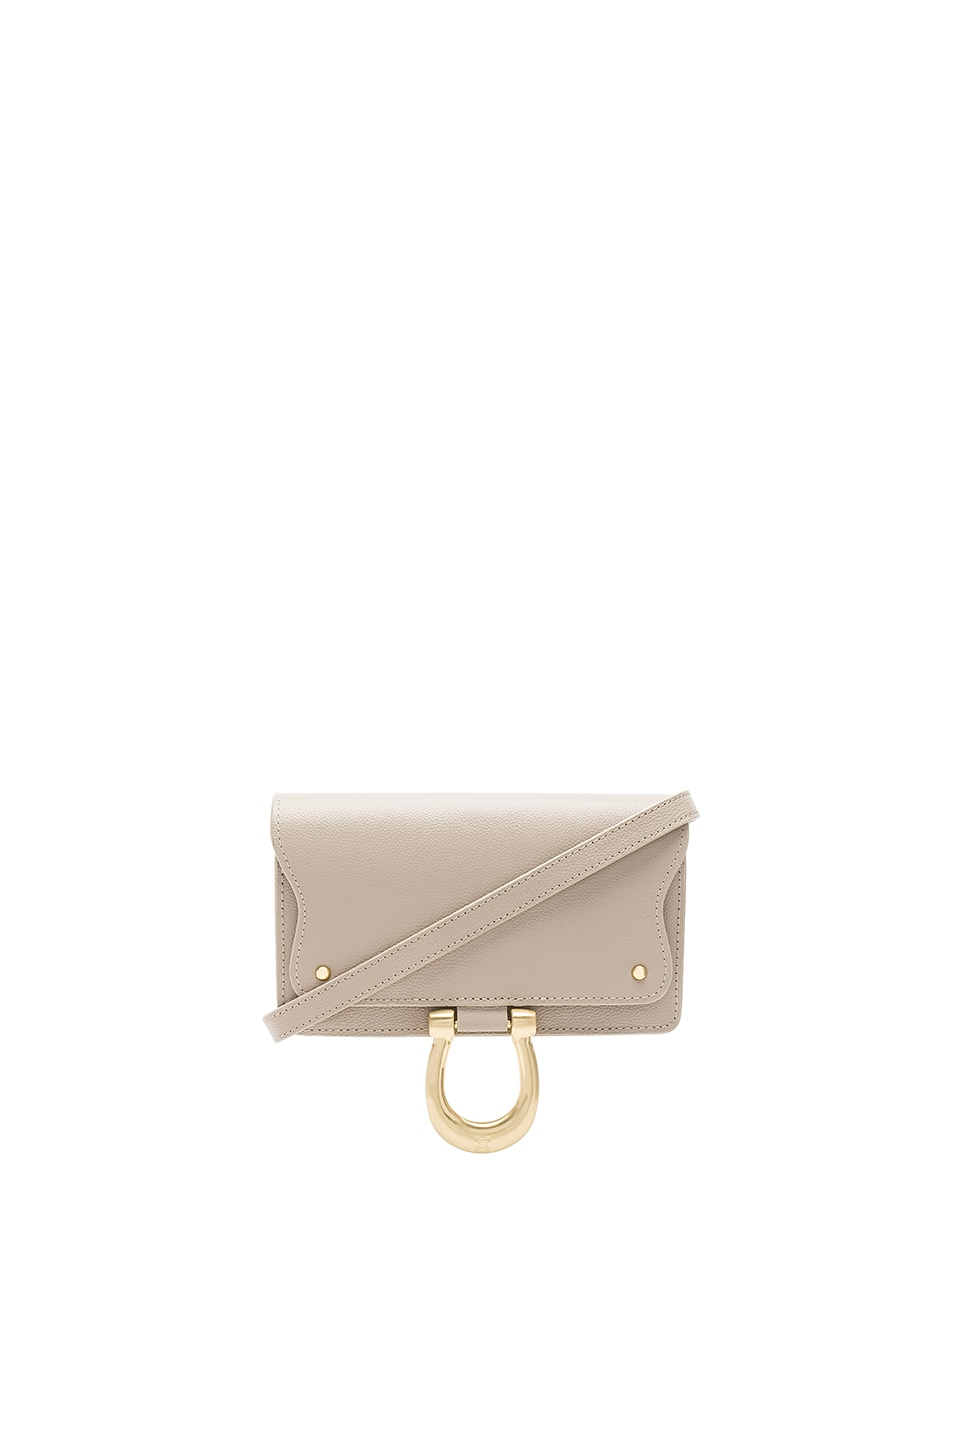 Sancia The Paris Mini Crossbody in Dove